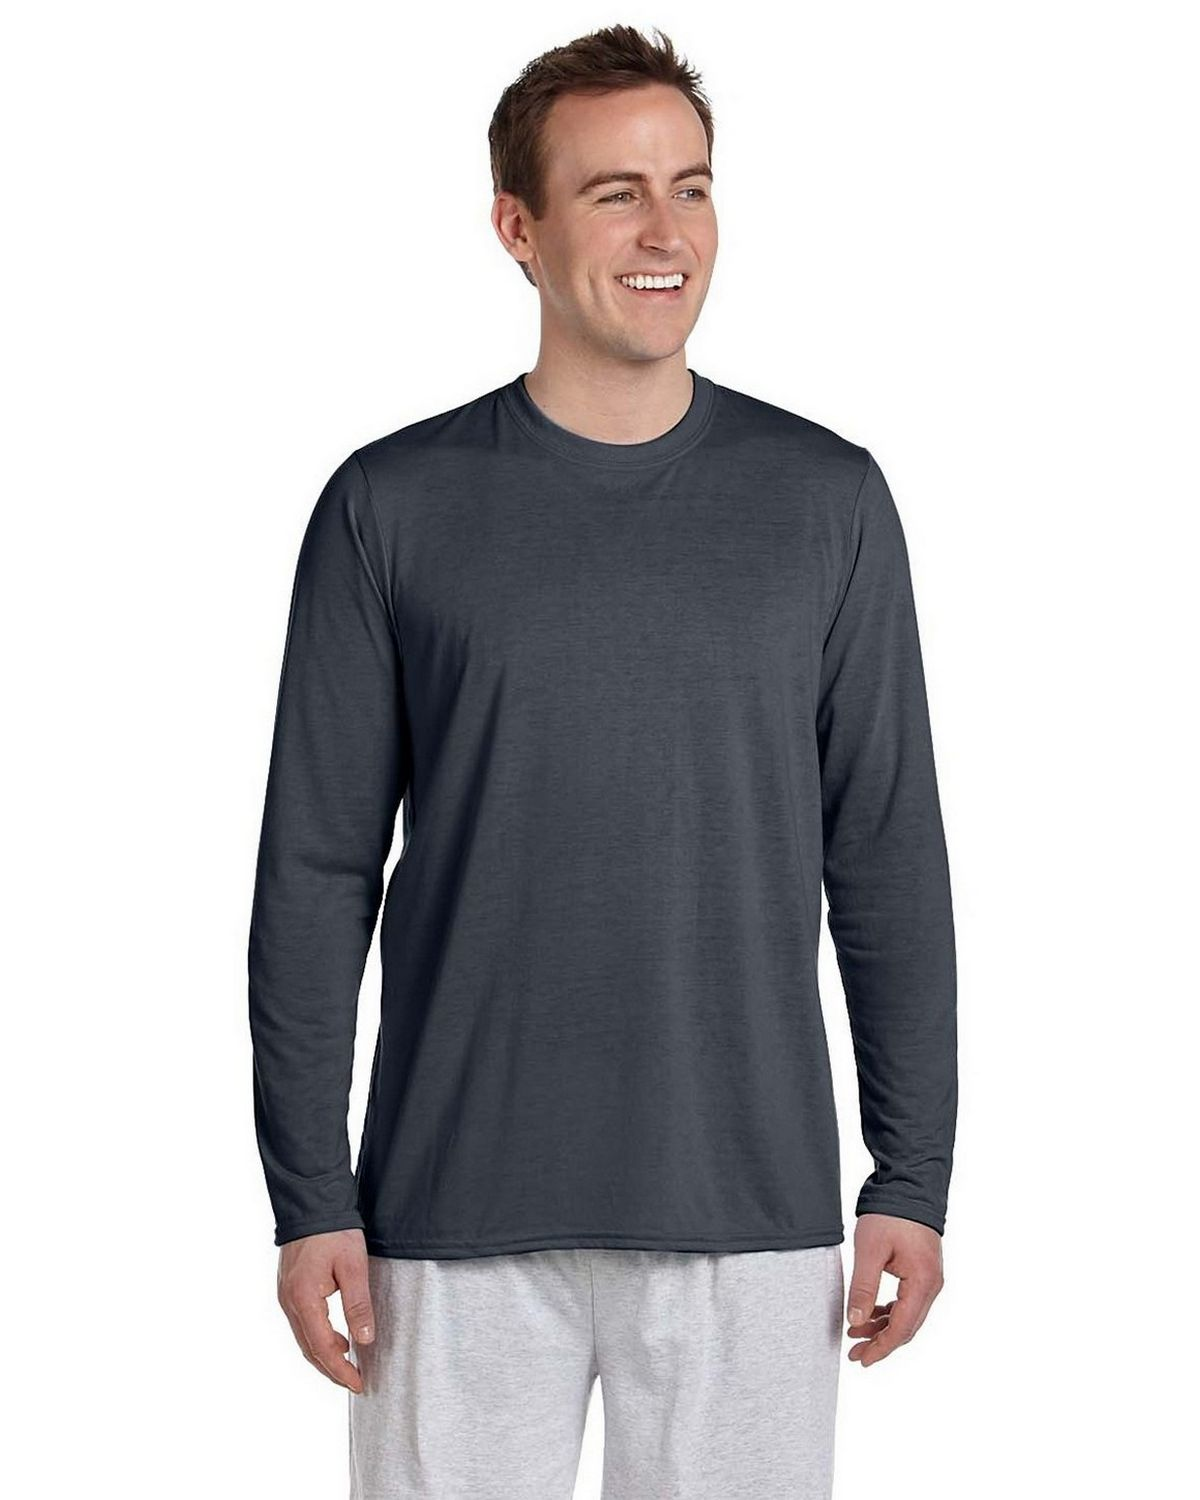 Gildan Mens Performance Long-Sleeve T-Shirt G424 -Sport Grey -M G424